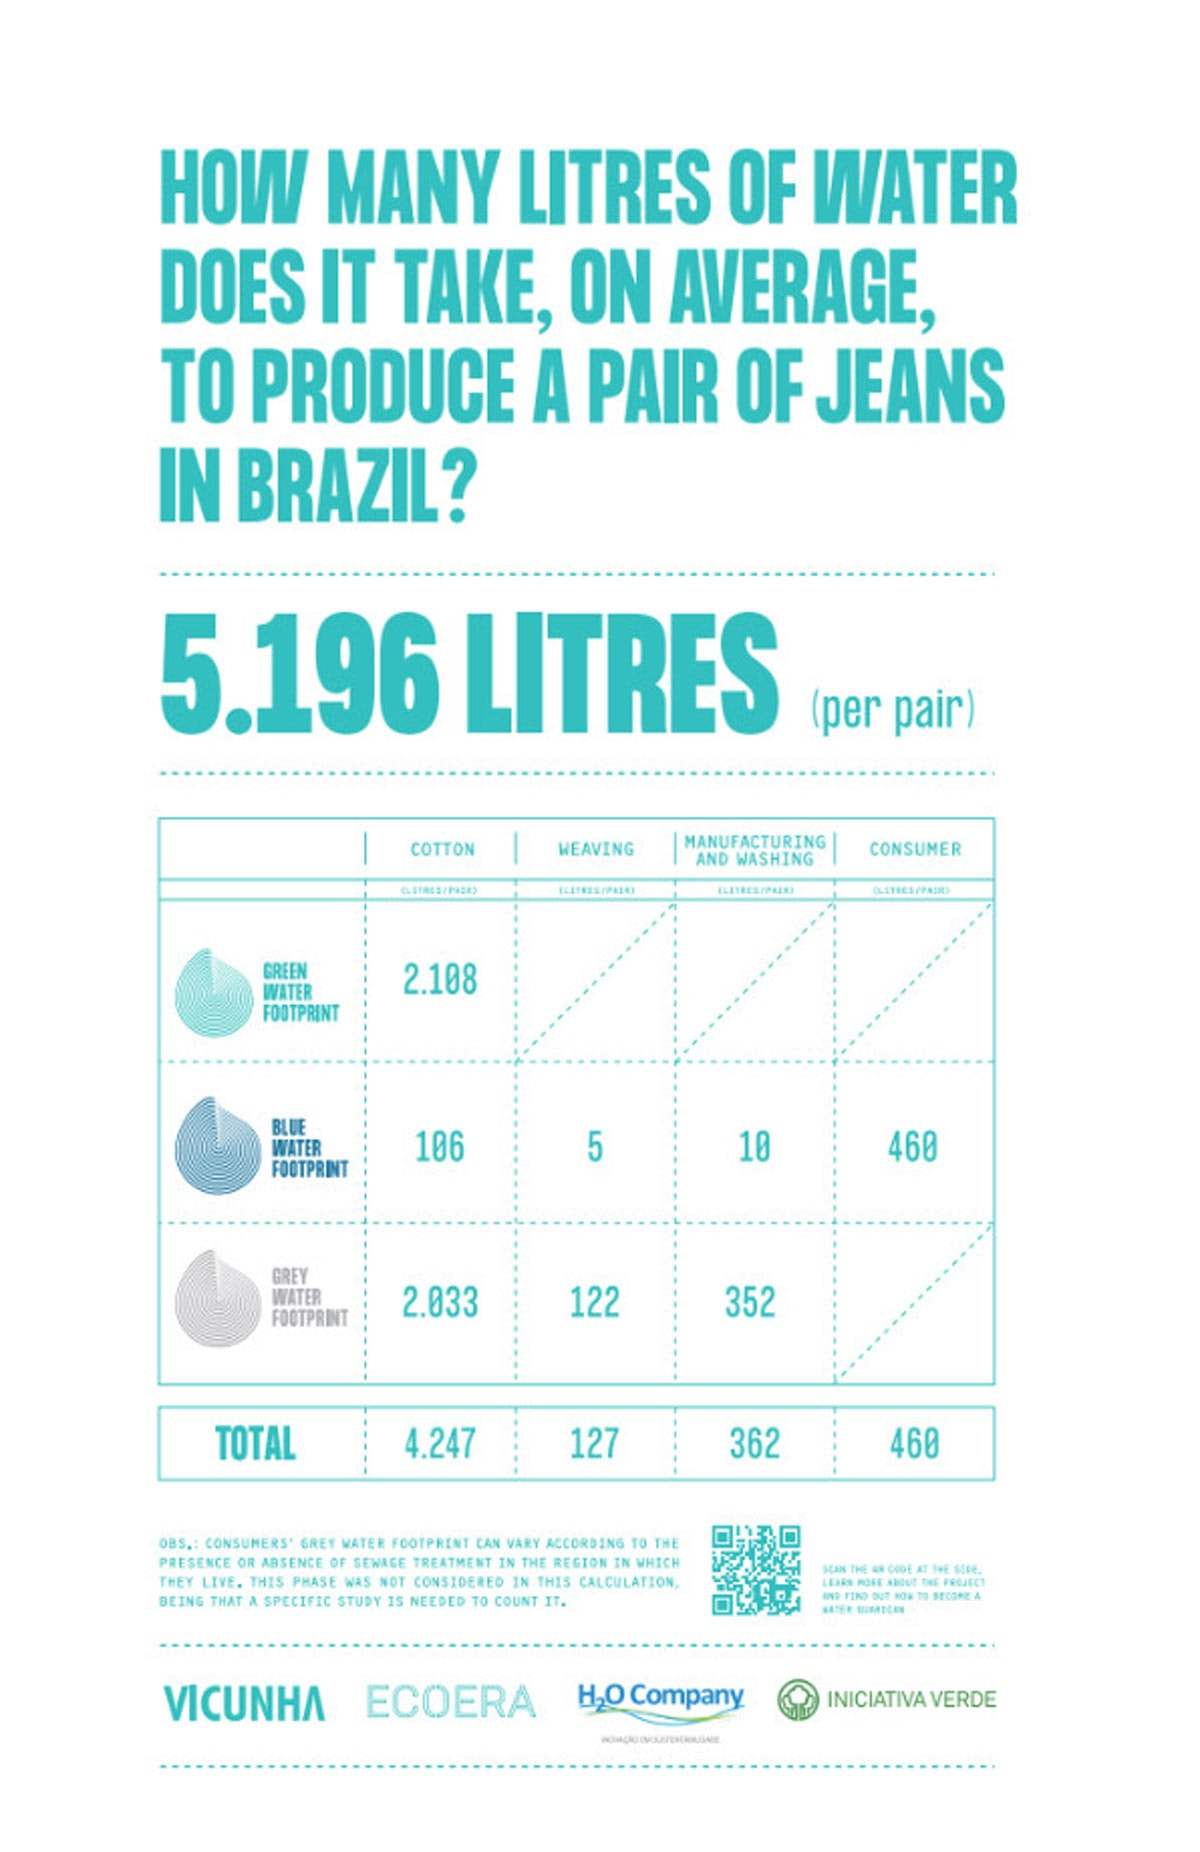 Vicunha introduces project for reducing water consumption in jeans production